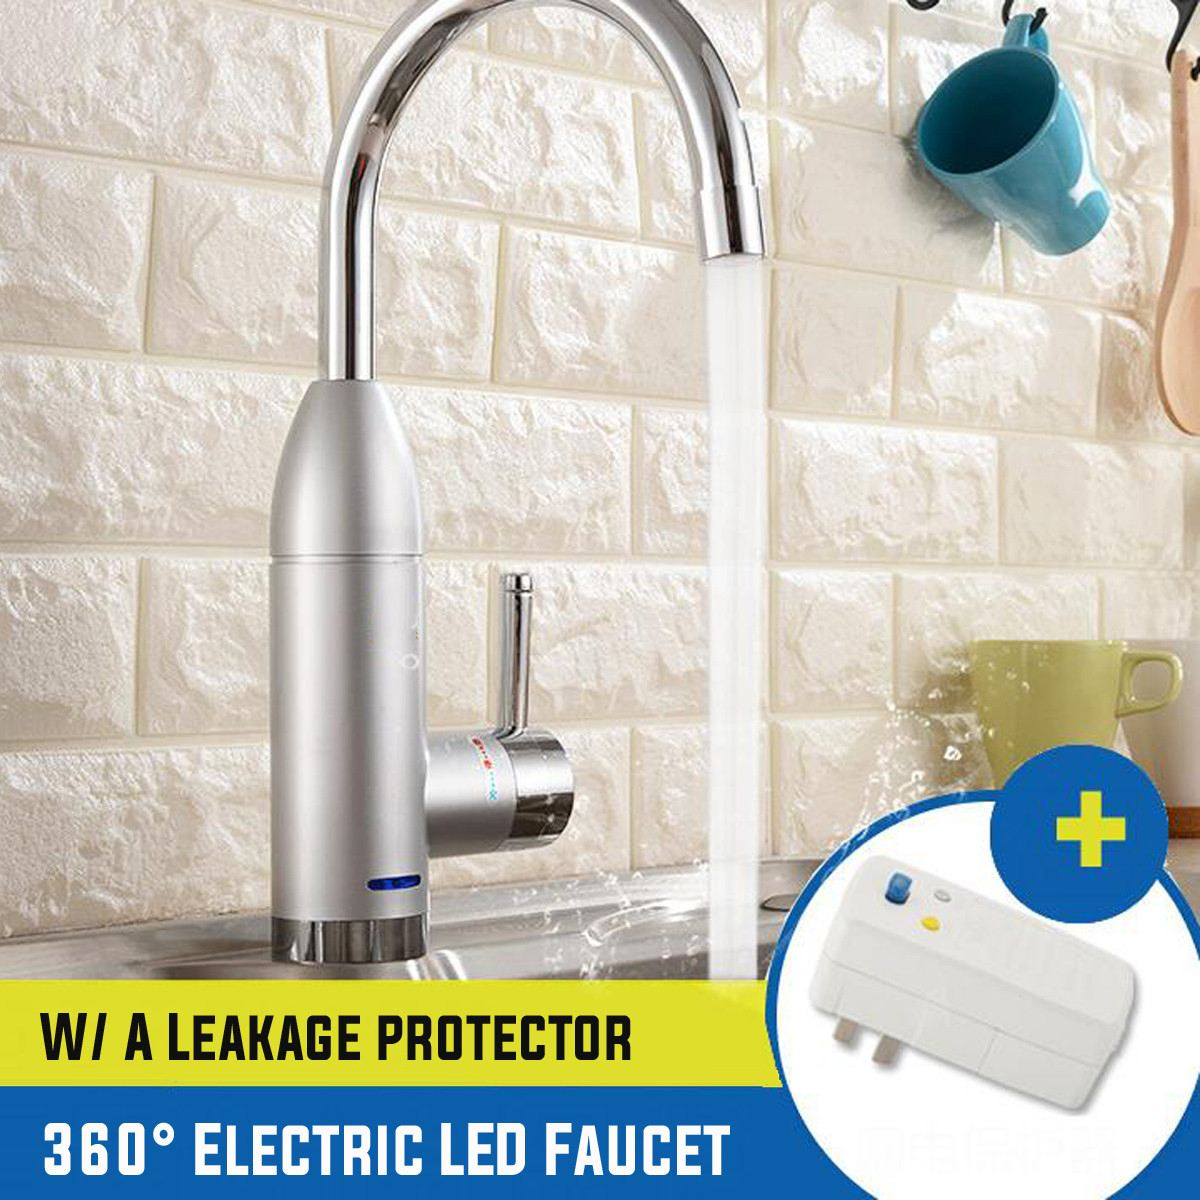 220V 3000W LED Display Instant Electric Hot Water Heater Faucet Home Kitchen Bath 360 Degree Hot And Cold Mixer Tap Water Heater